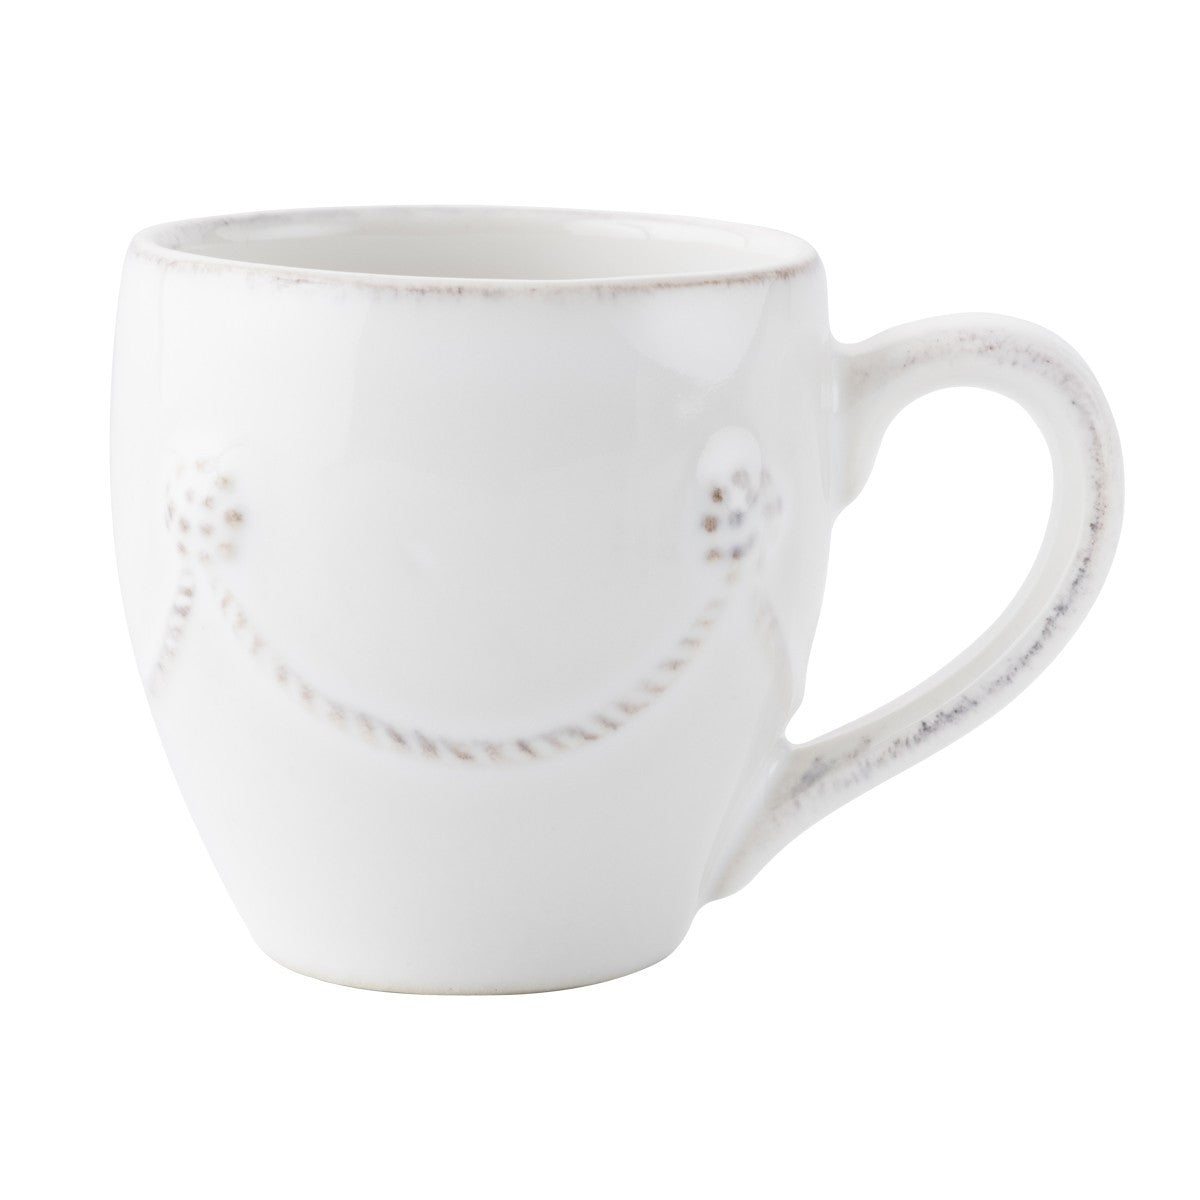 Berry & Thread White Demitasse Cup